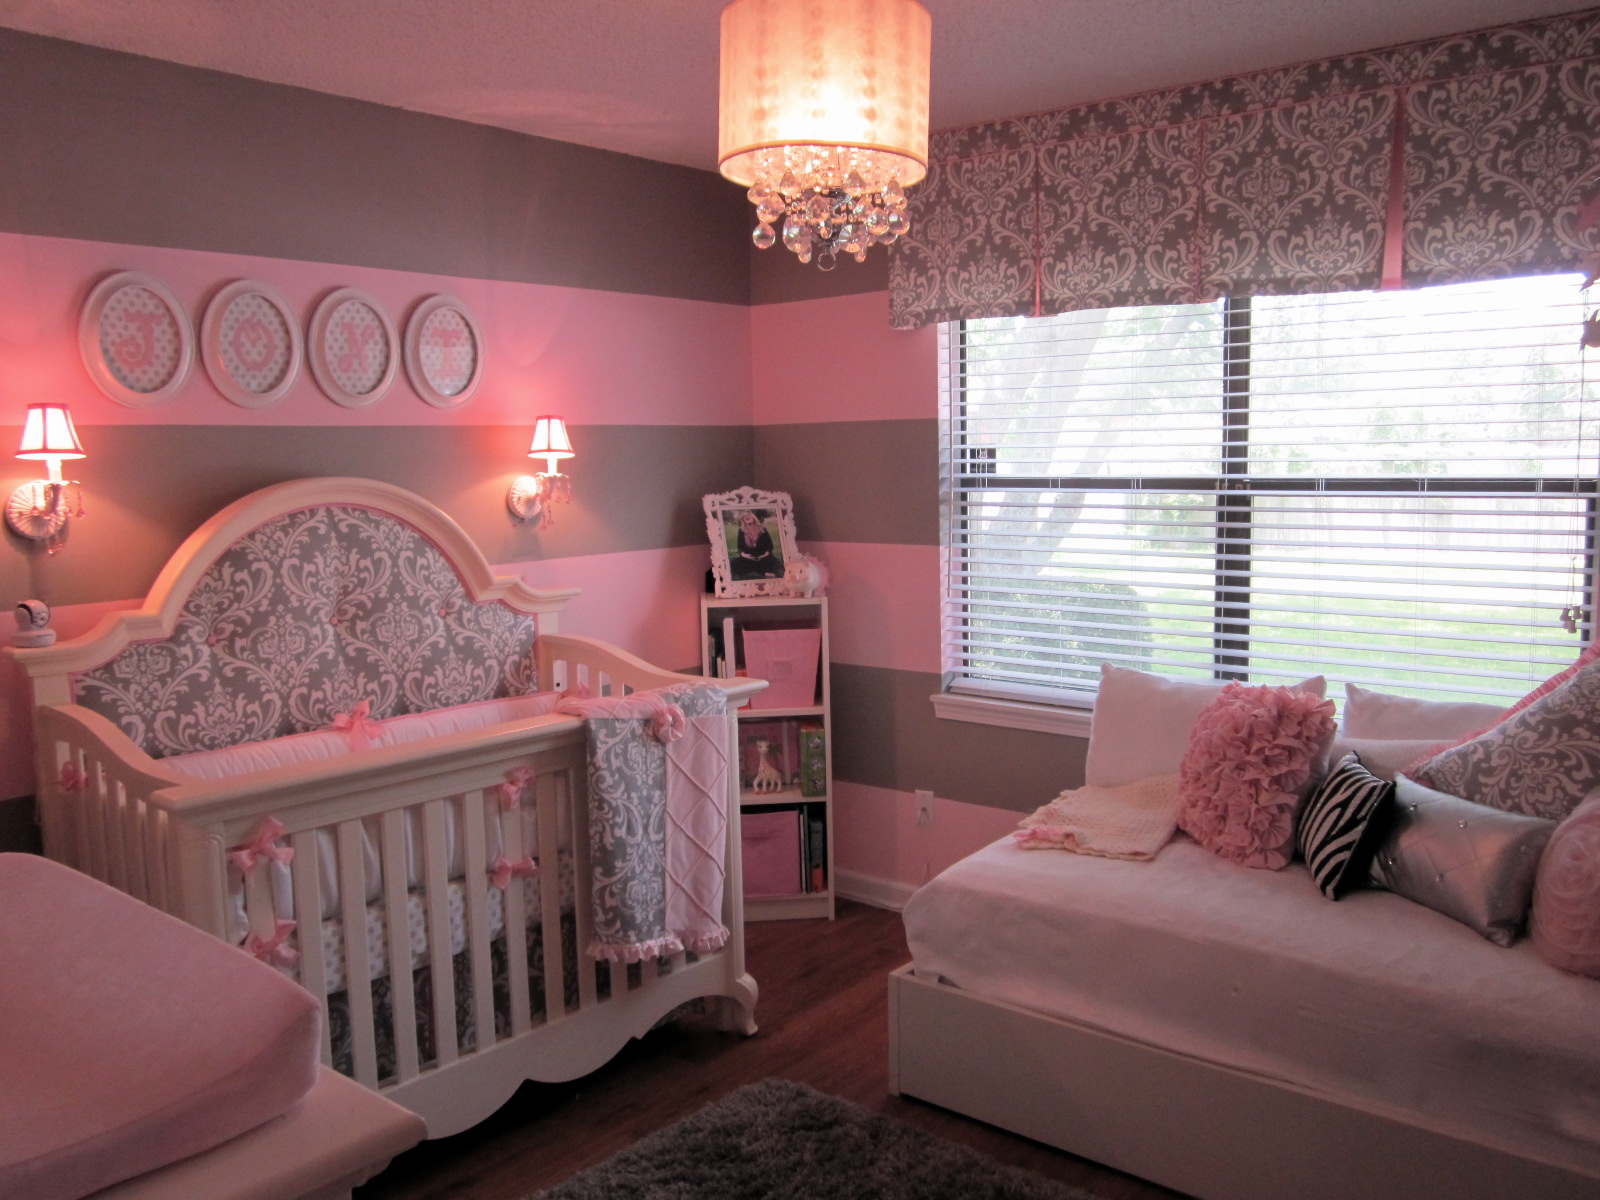 Grey And Pink Pink And Gray For Baby J Project Nursery